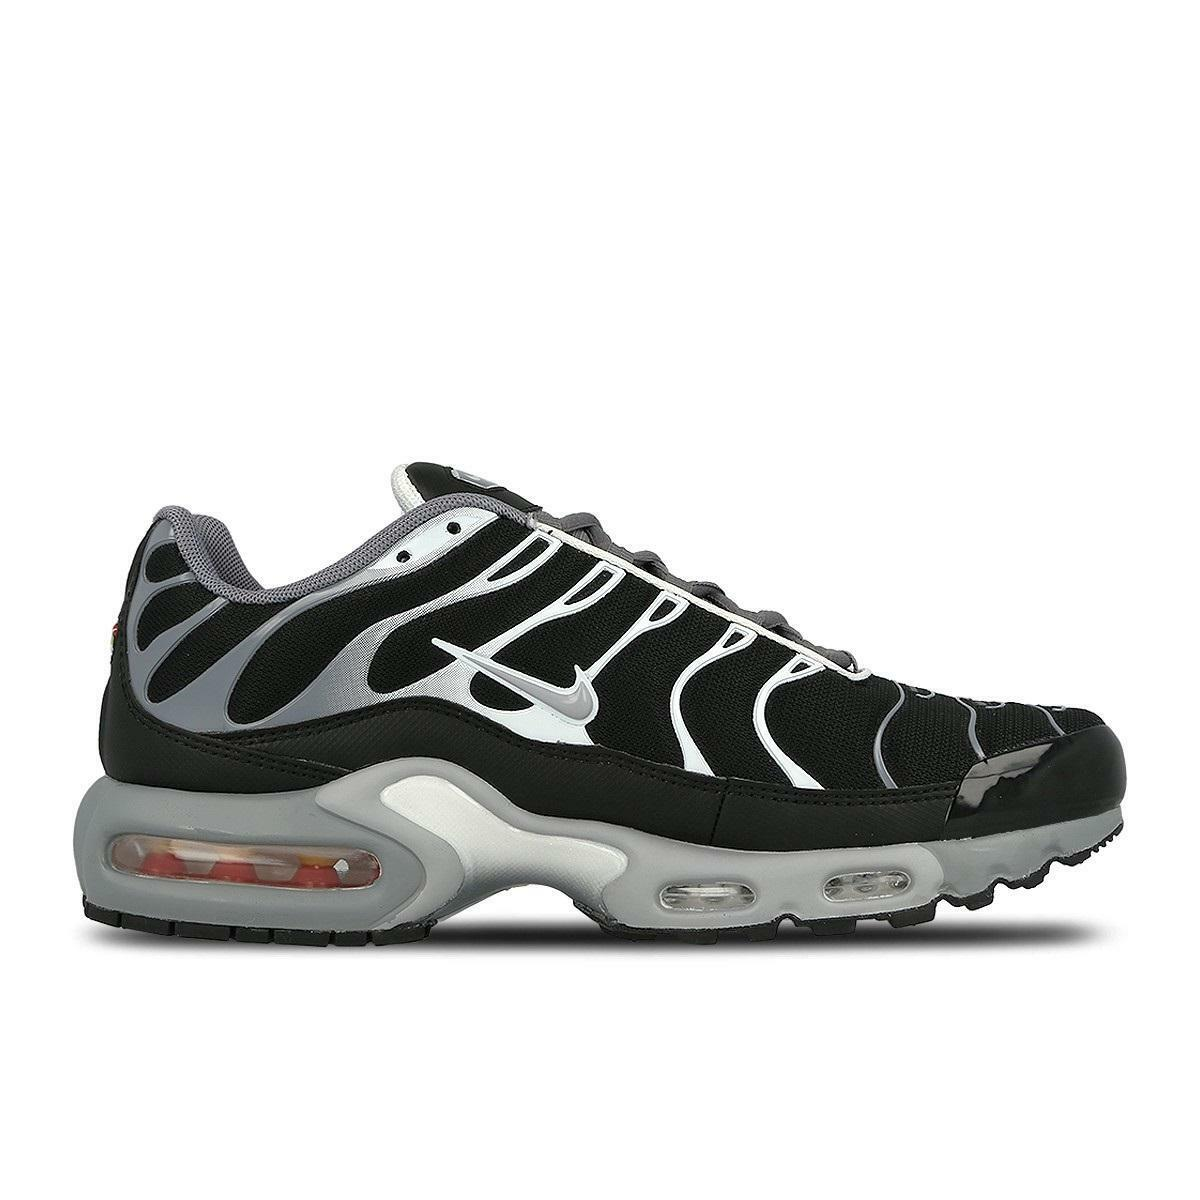 Mens NIKE AIR MAX PLUS Cool grau Trainers 852630 010